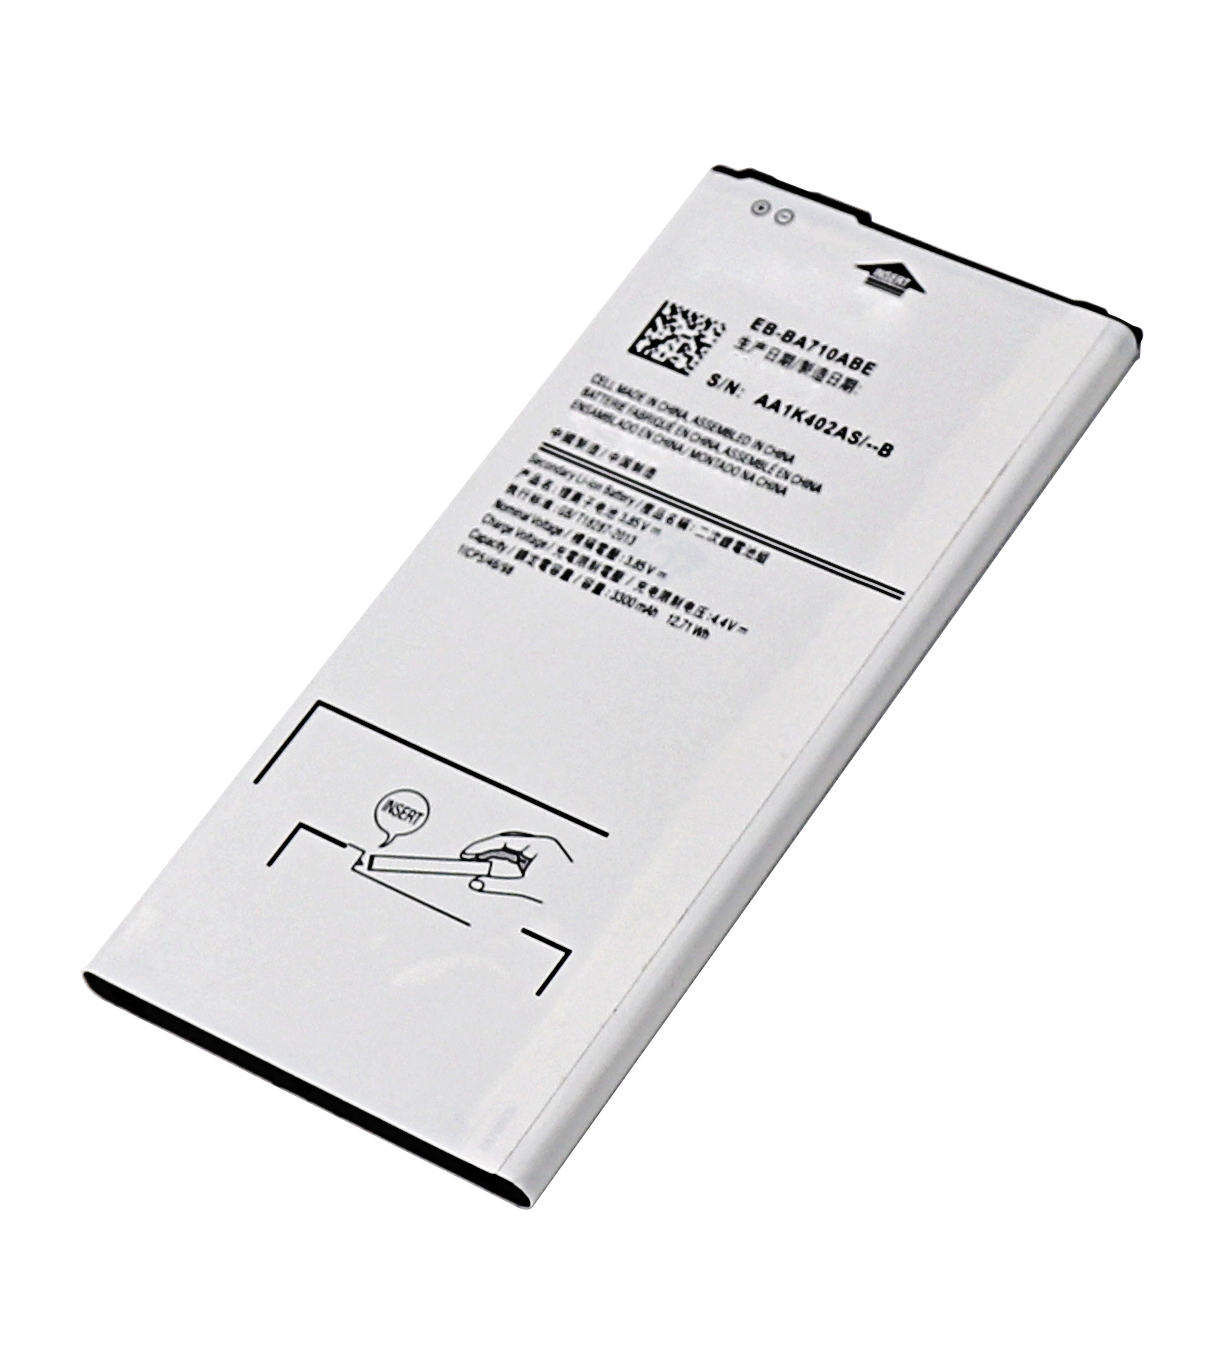 FOR SAMSUNG GALAXY J7(2016) J710 NEW REPLACEMENT BATTERY WITH 5 YEARS WARRANTY